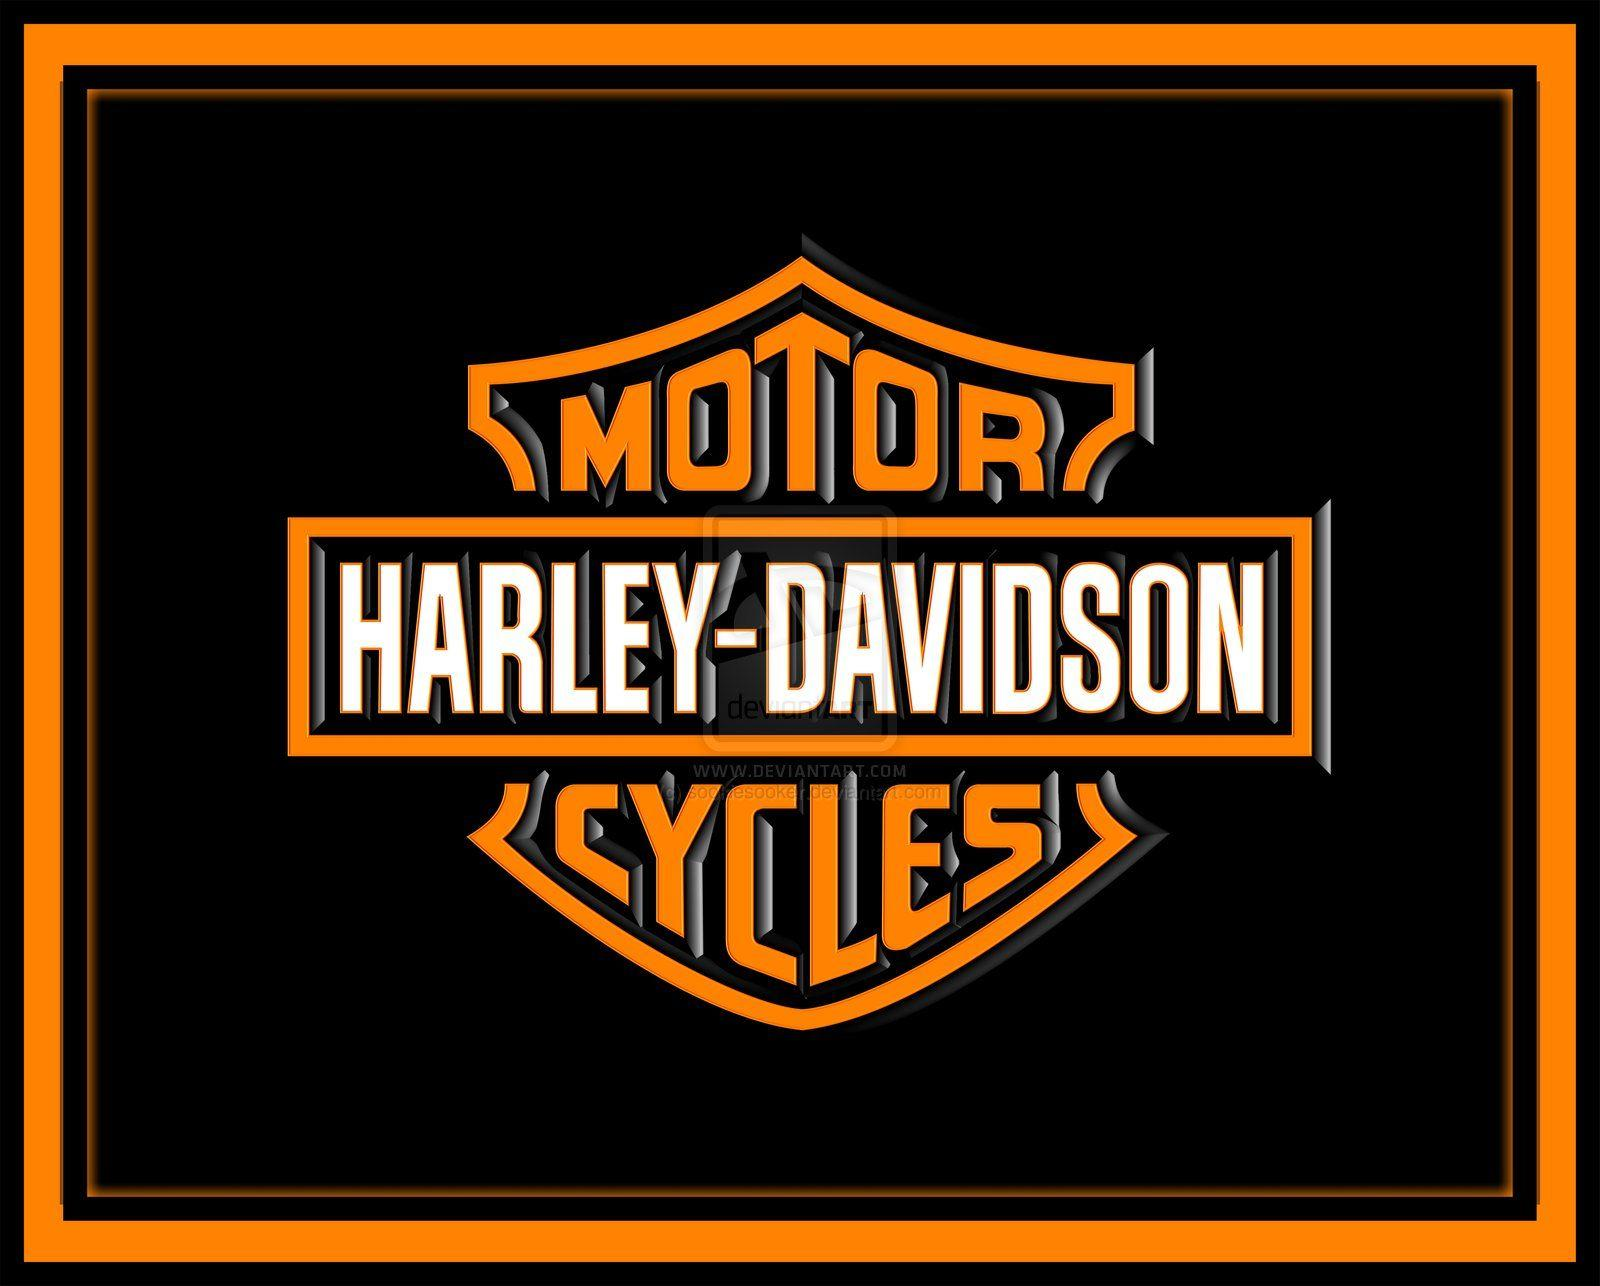 Harley Davidson Logo With Flames Widescreen 2 HD Wallpapers